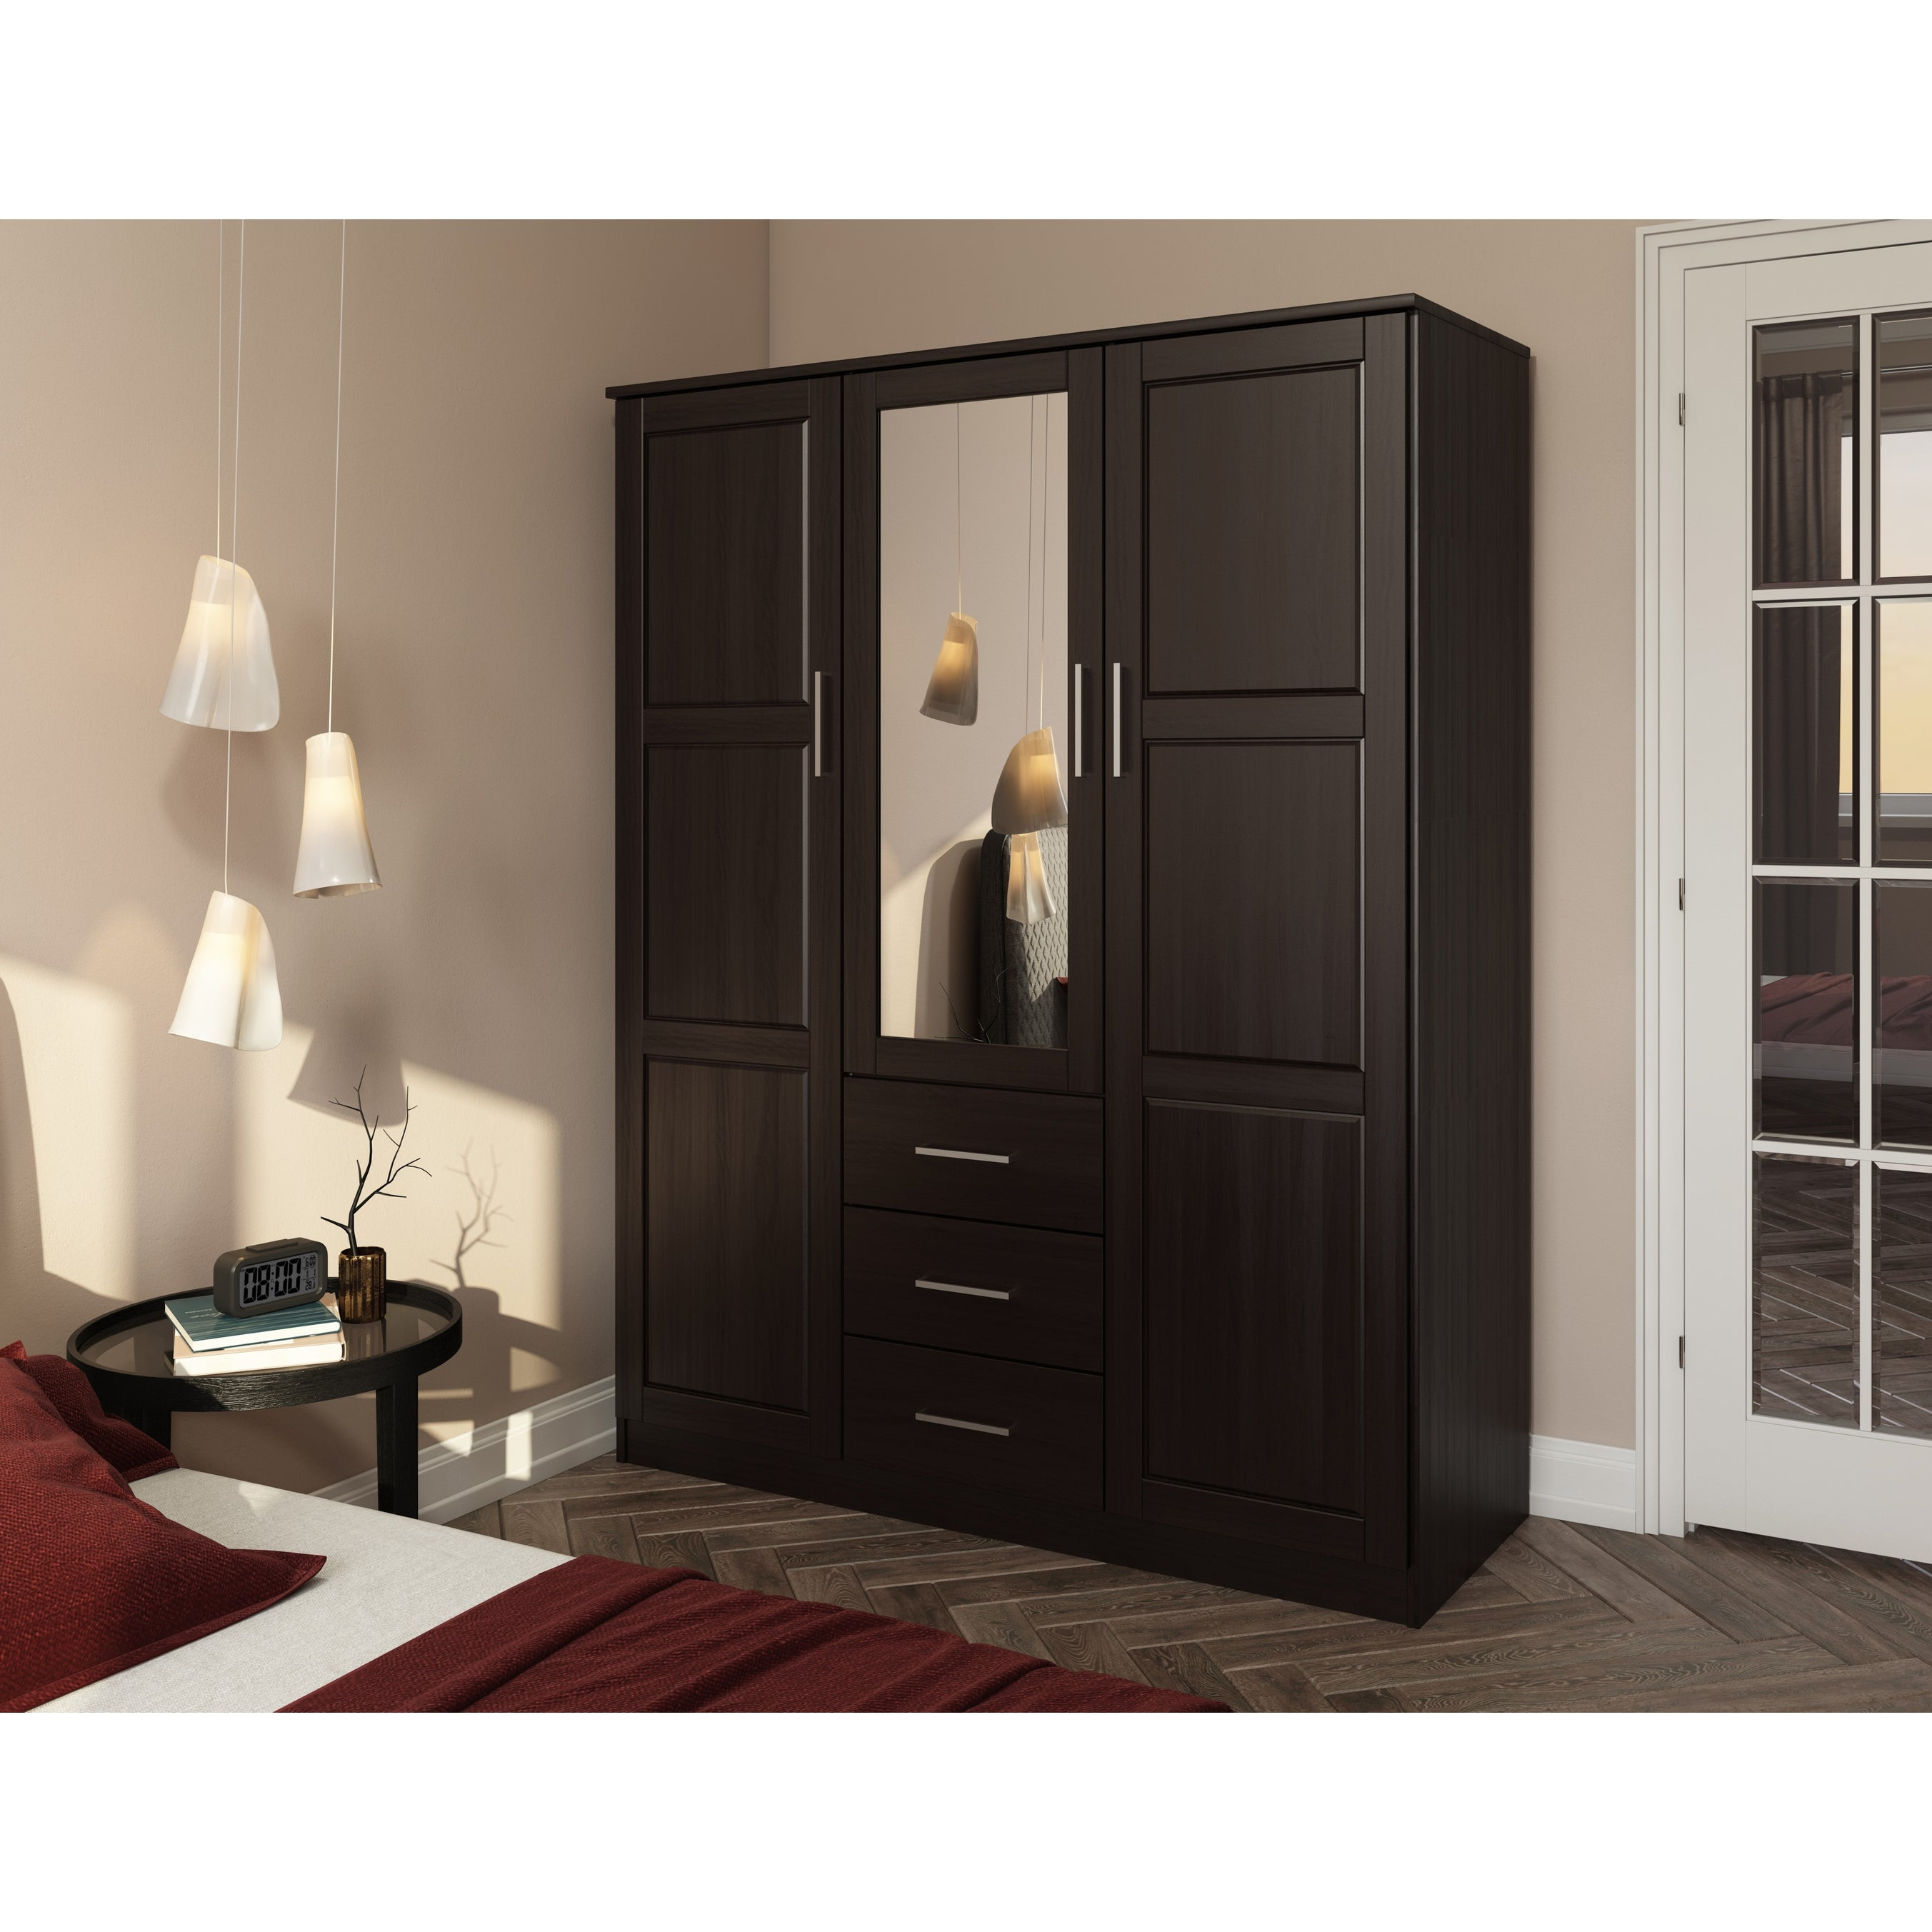 Shop Cosmo Solid Wood 3 Door Wardrobe With Mirror By Palace Imports On Sale Overstock 27120317